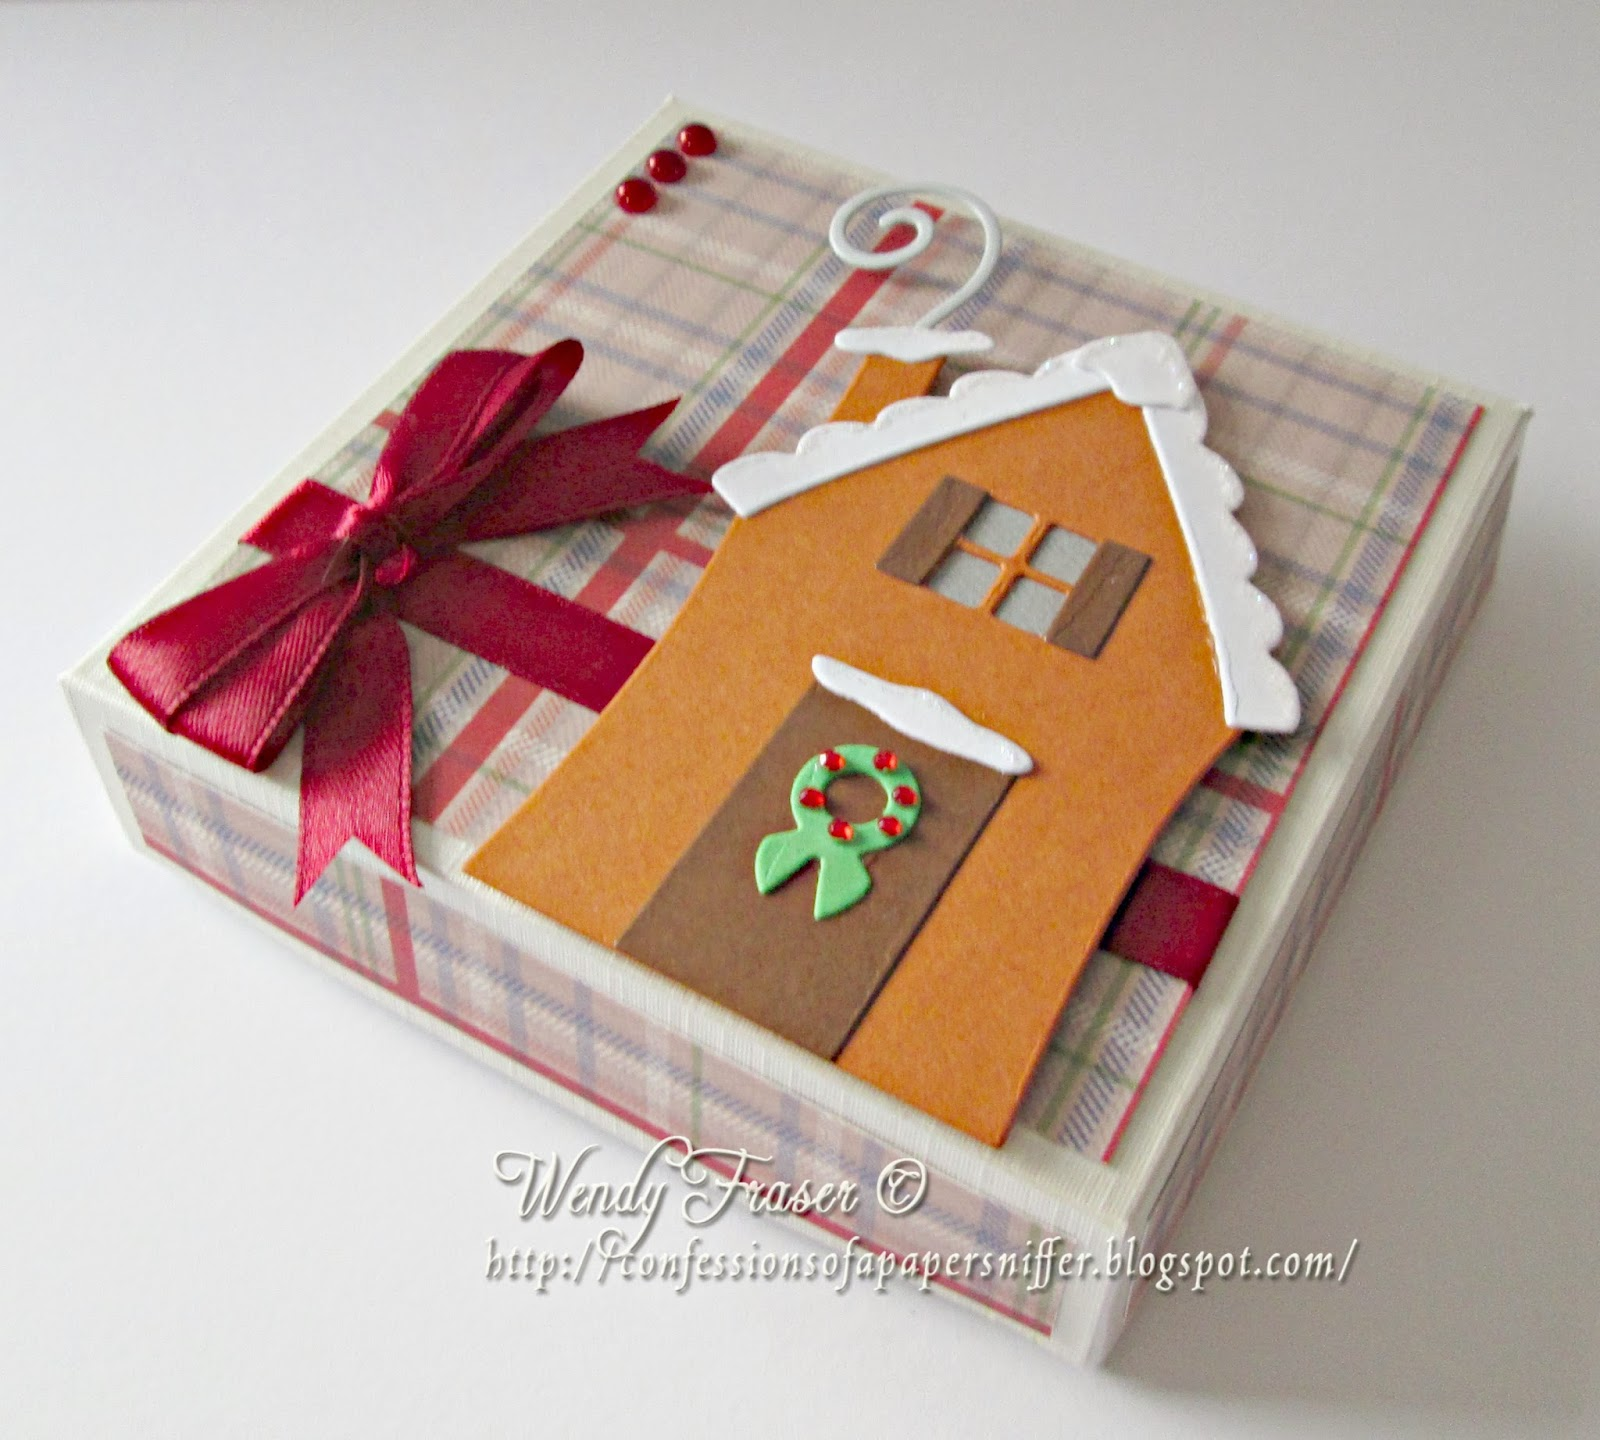 Confessions of a Papersniffer: Gingerbread House Gift Box